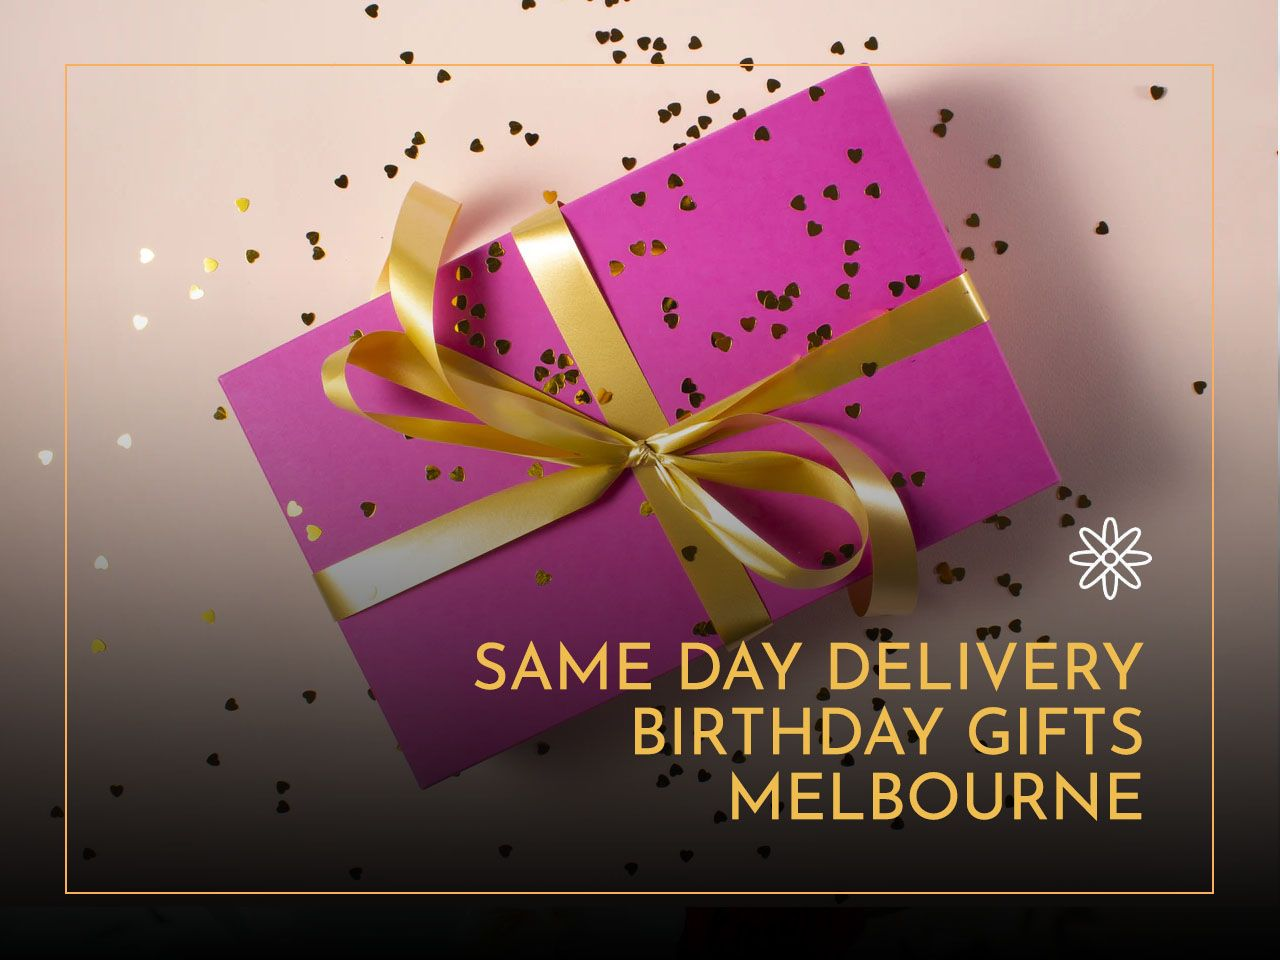 Same day delivery birthday gifts melbourne